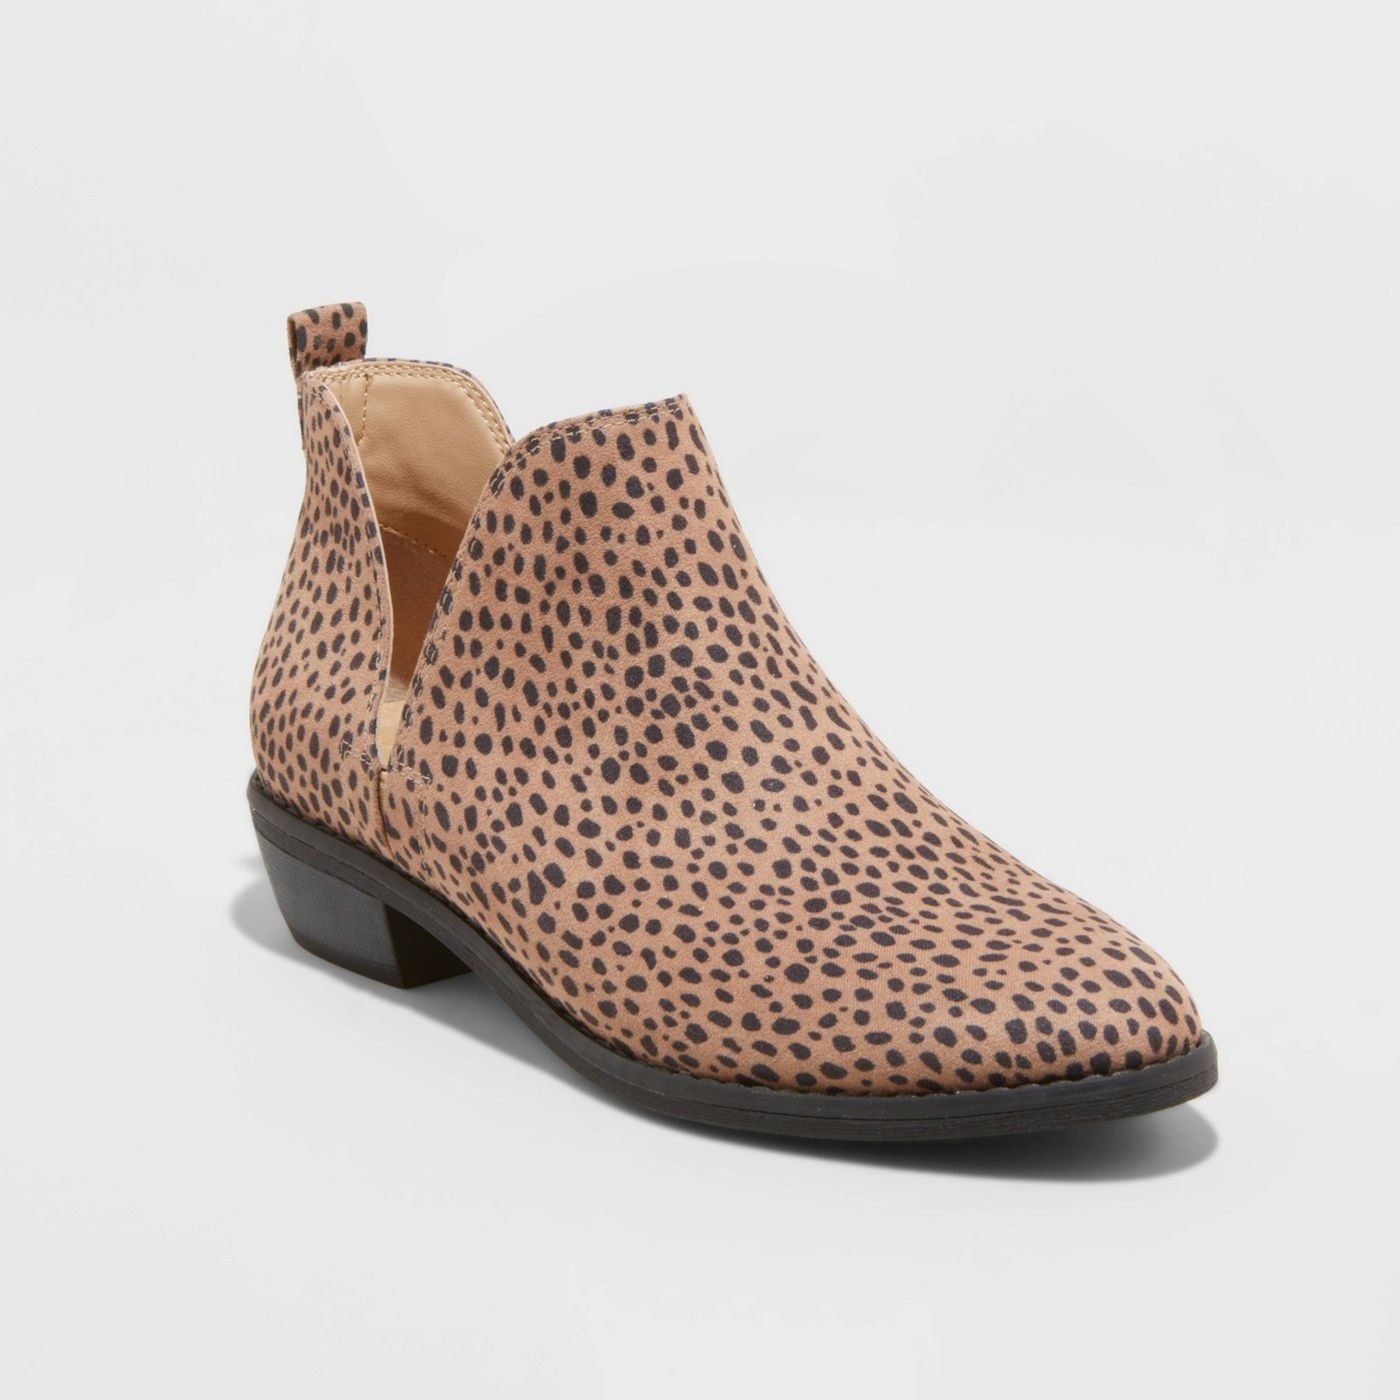 The cheetah print cutout ankle booties